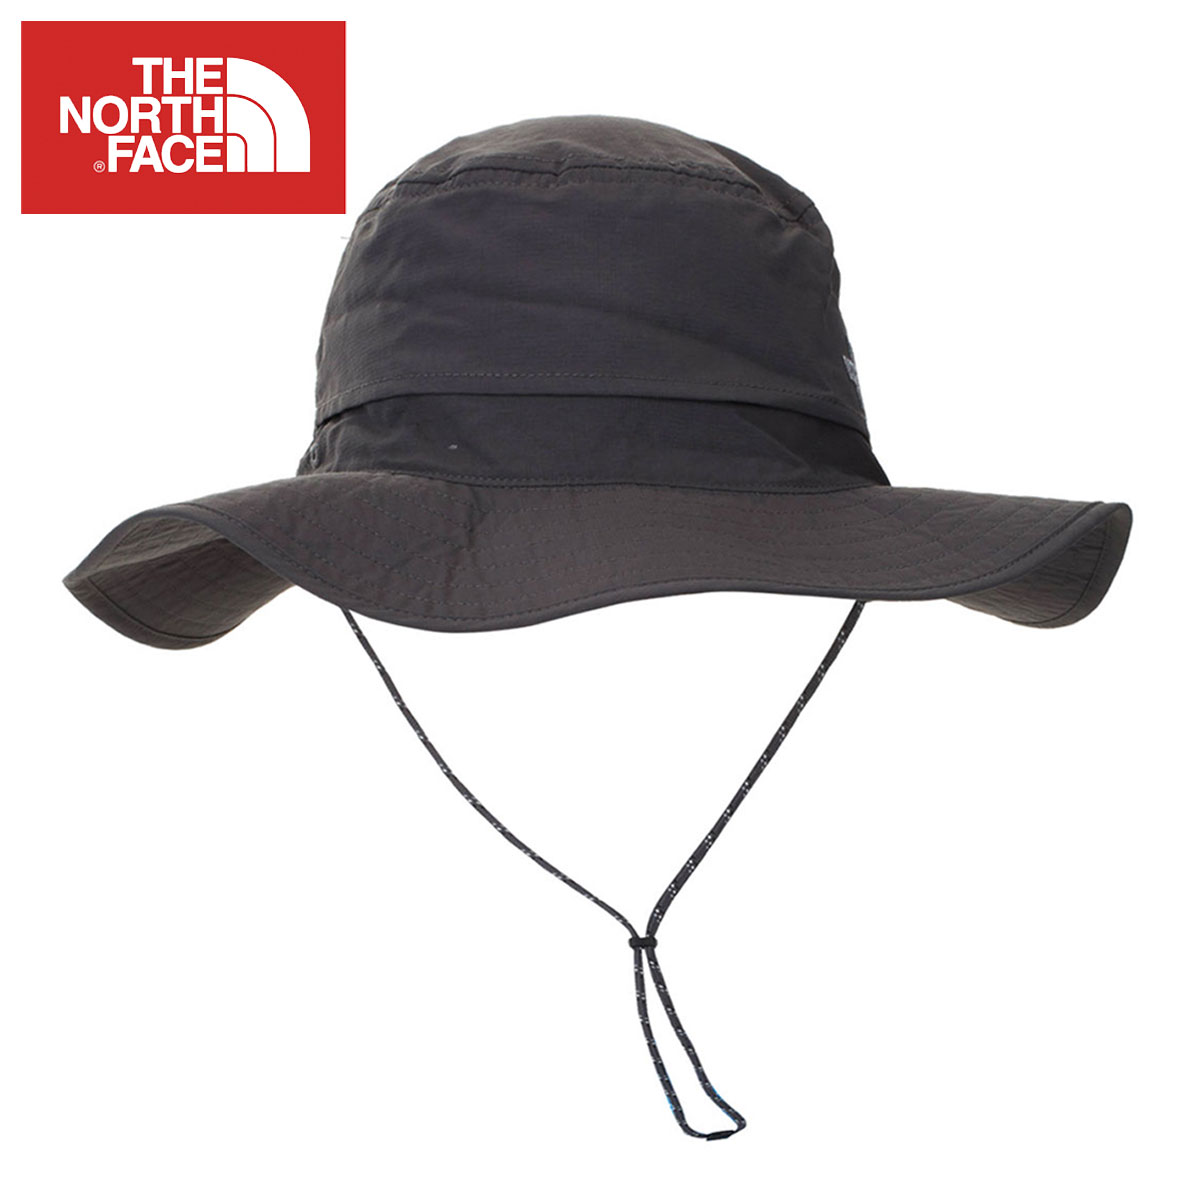 ノースフェイス THE NORTH FACE 正規品 メンズ レディース ハット 帽子 THE NORTH FACE HORIZON BREEZE BRIMMER HAT HAWTHORNE KHAKI